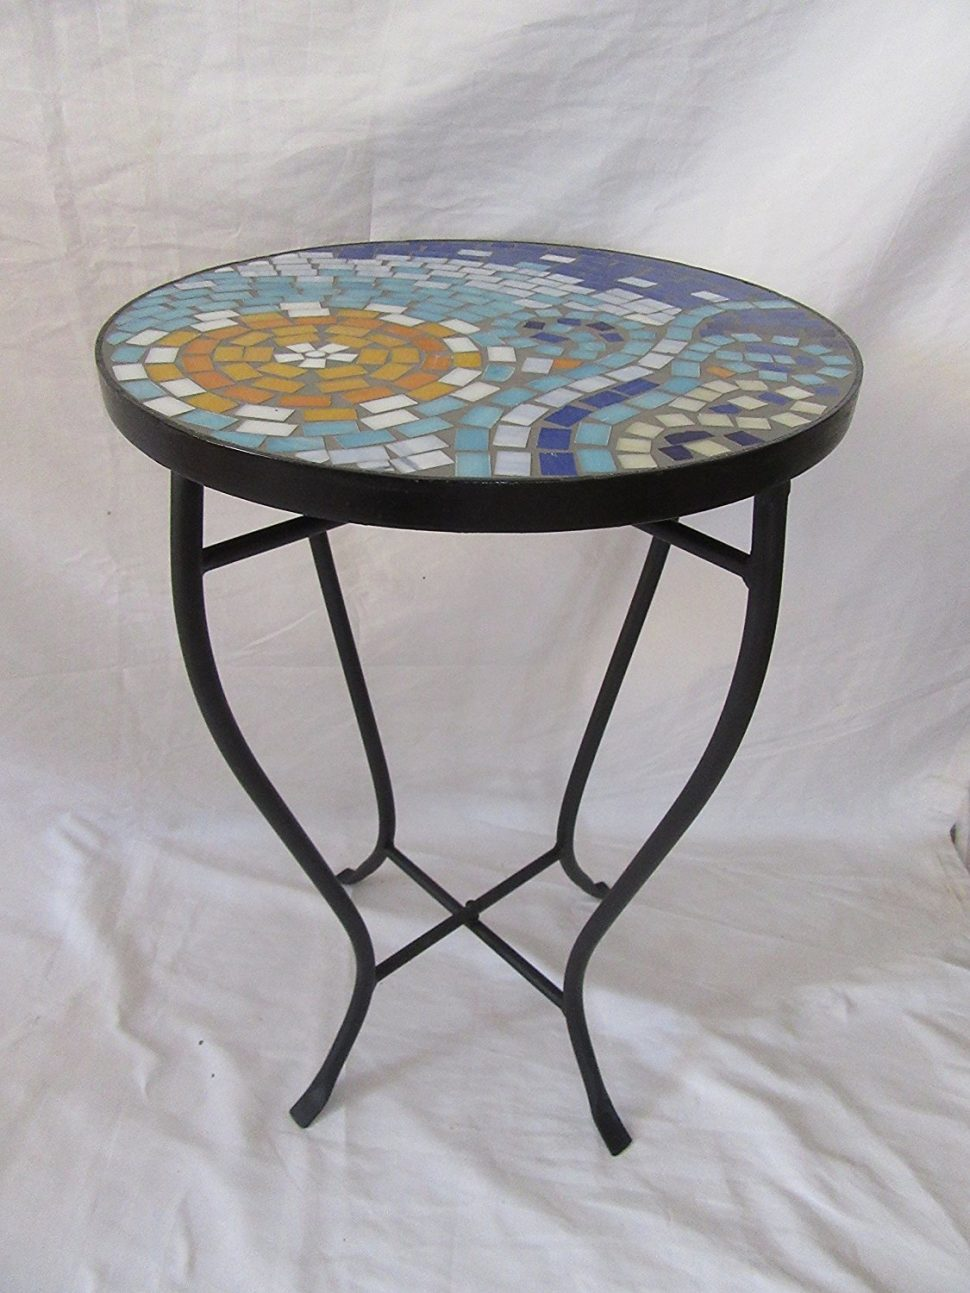 astounding sideent tables modern outdoor unique wood with accent table blue chair ott small concrete dining gold lamp black shade end dale tiffany dragonfly lily bedroom design